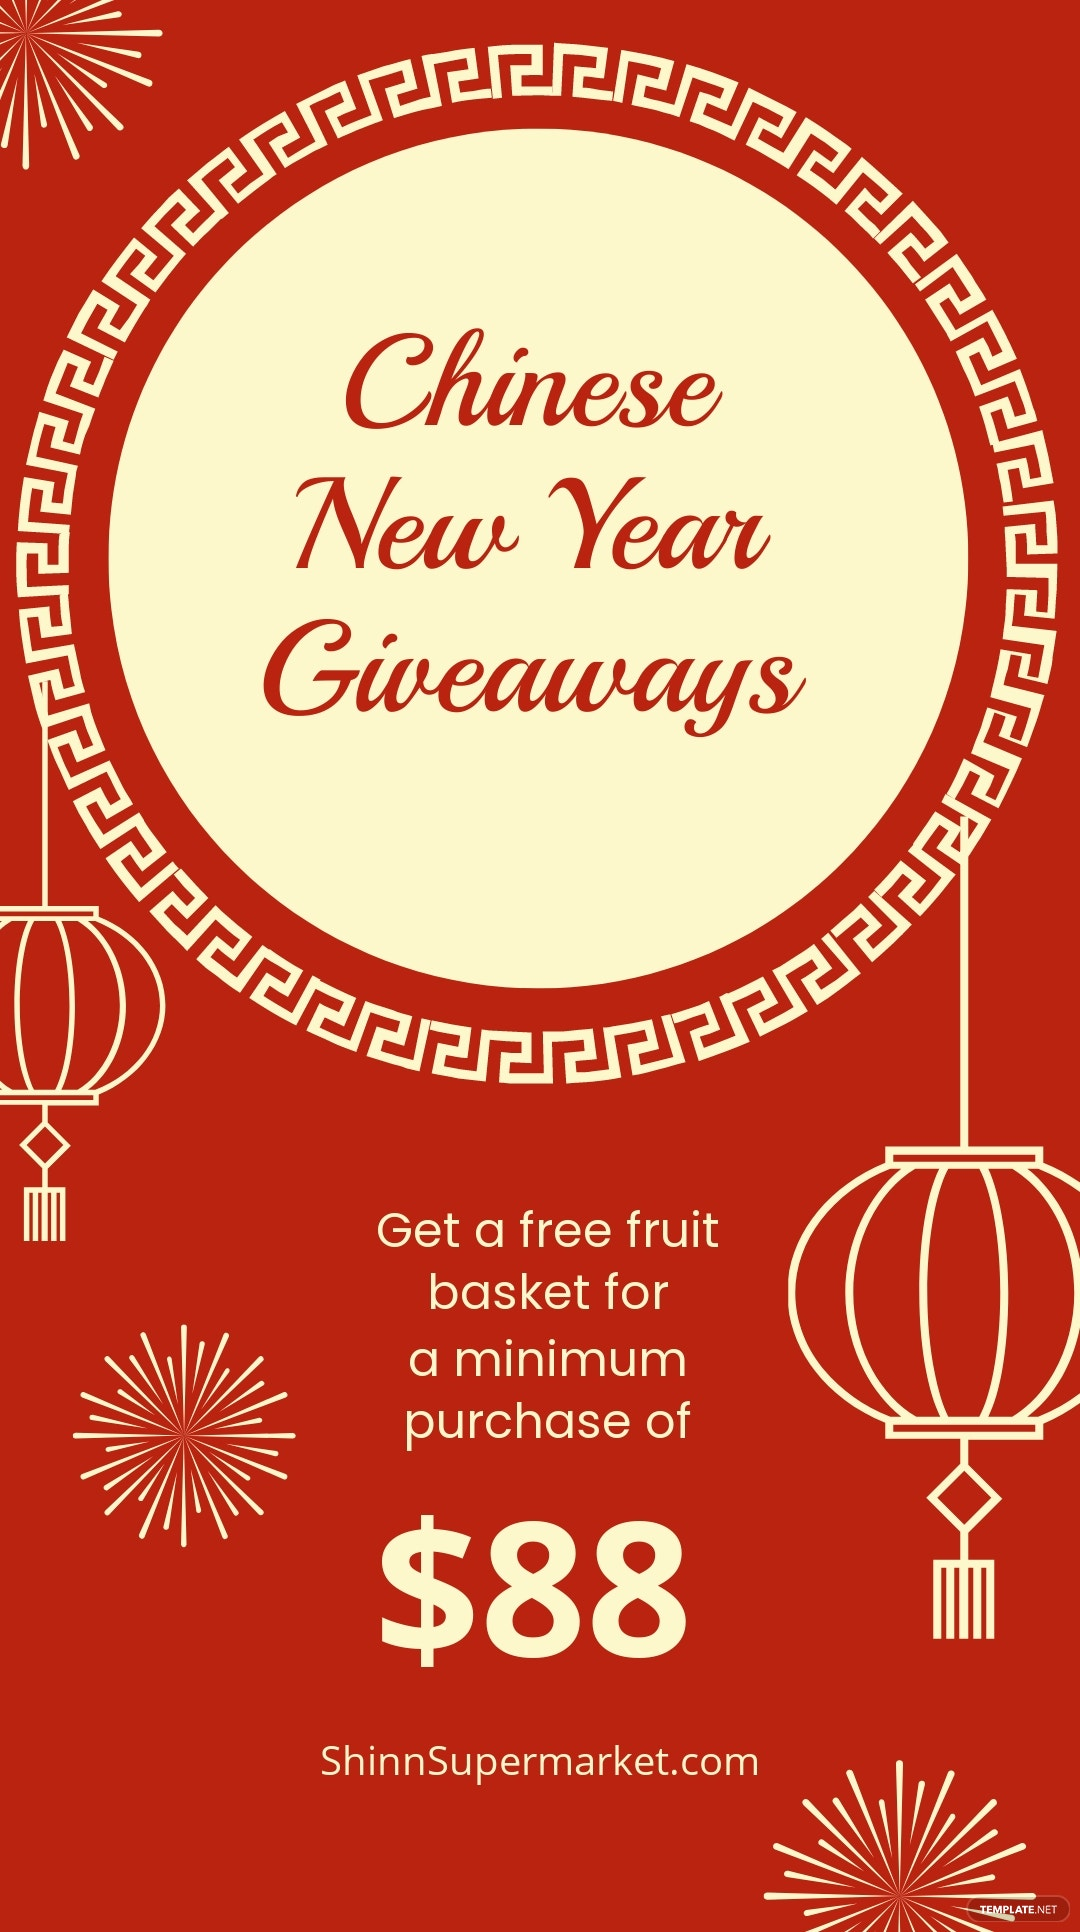 Chinese New Year Giveaway Instagram Story Template 3.jpe